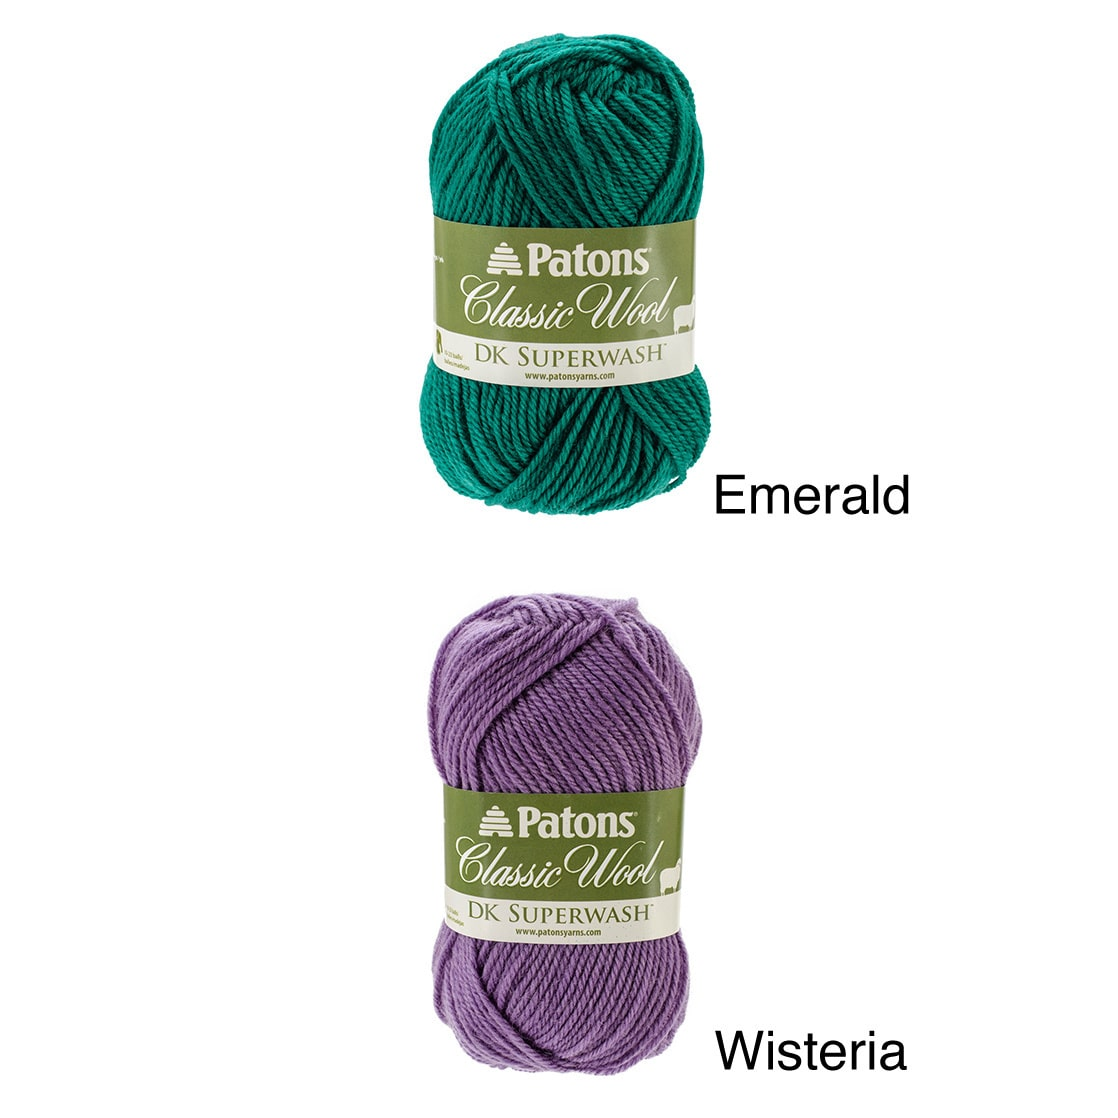 Patons Classic Wool DK SUPERWASH Yarn in Emerald New /& Smoke Free Home